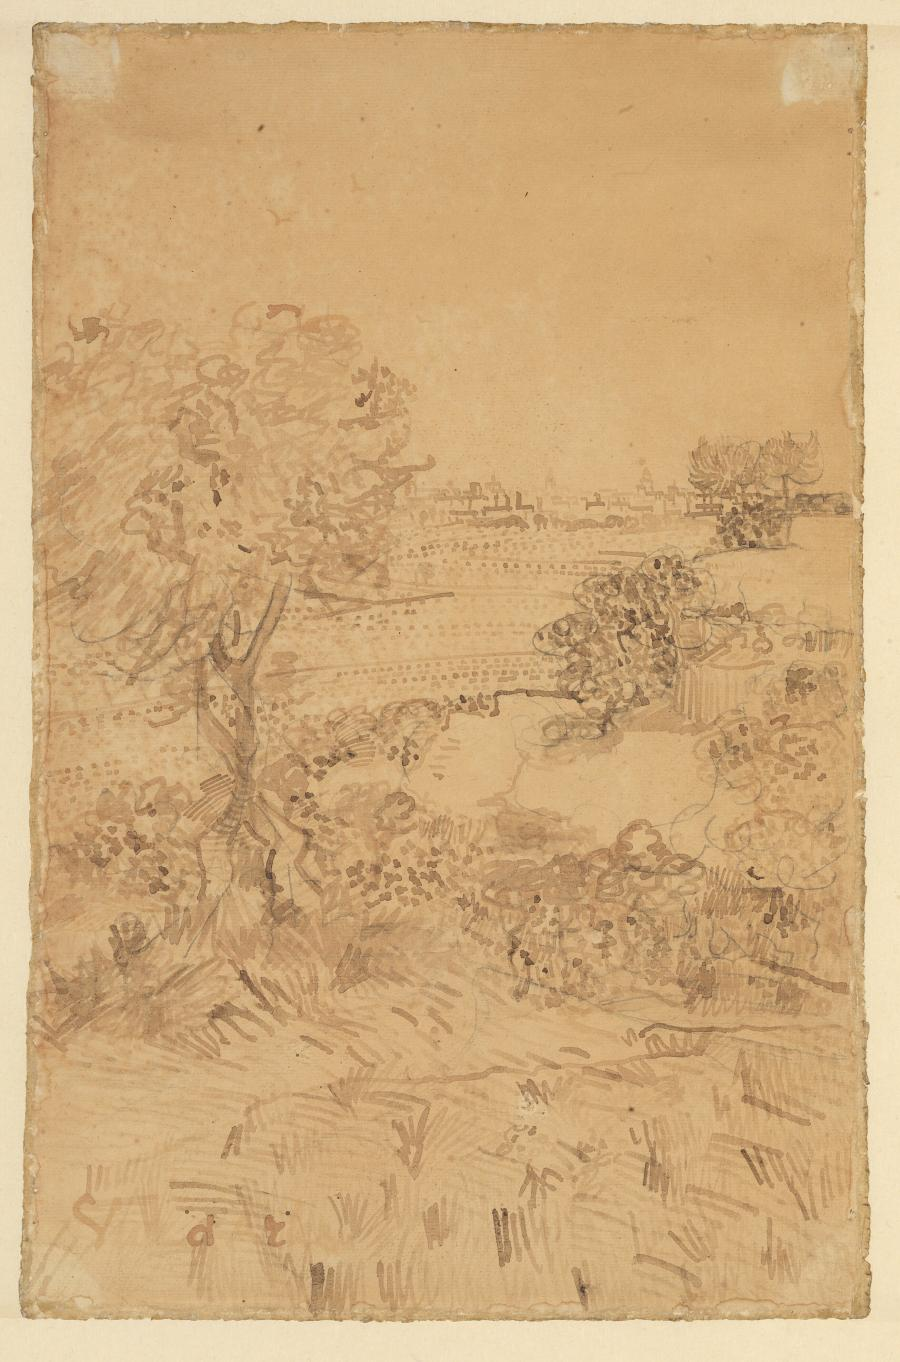 Landscape with Trees and a Distant View of Arles (Provence-Alpes-Côte d'Azur region, France)